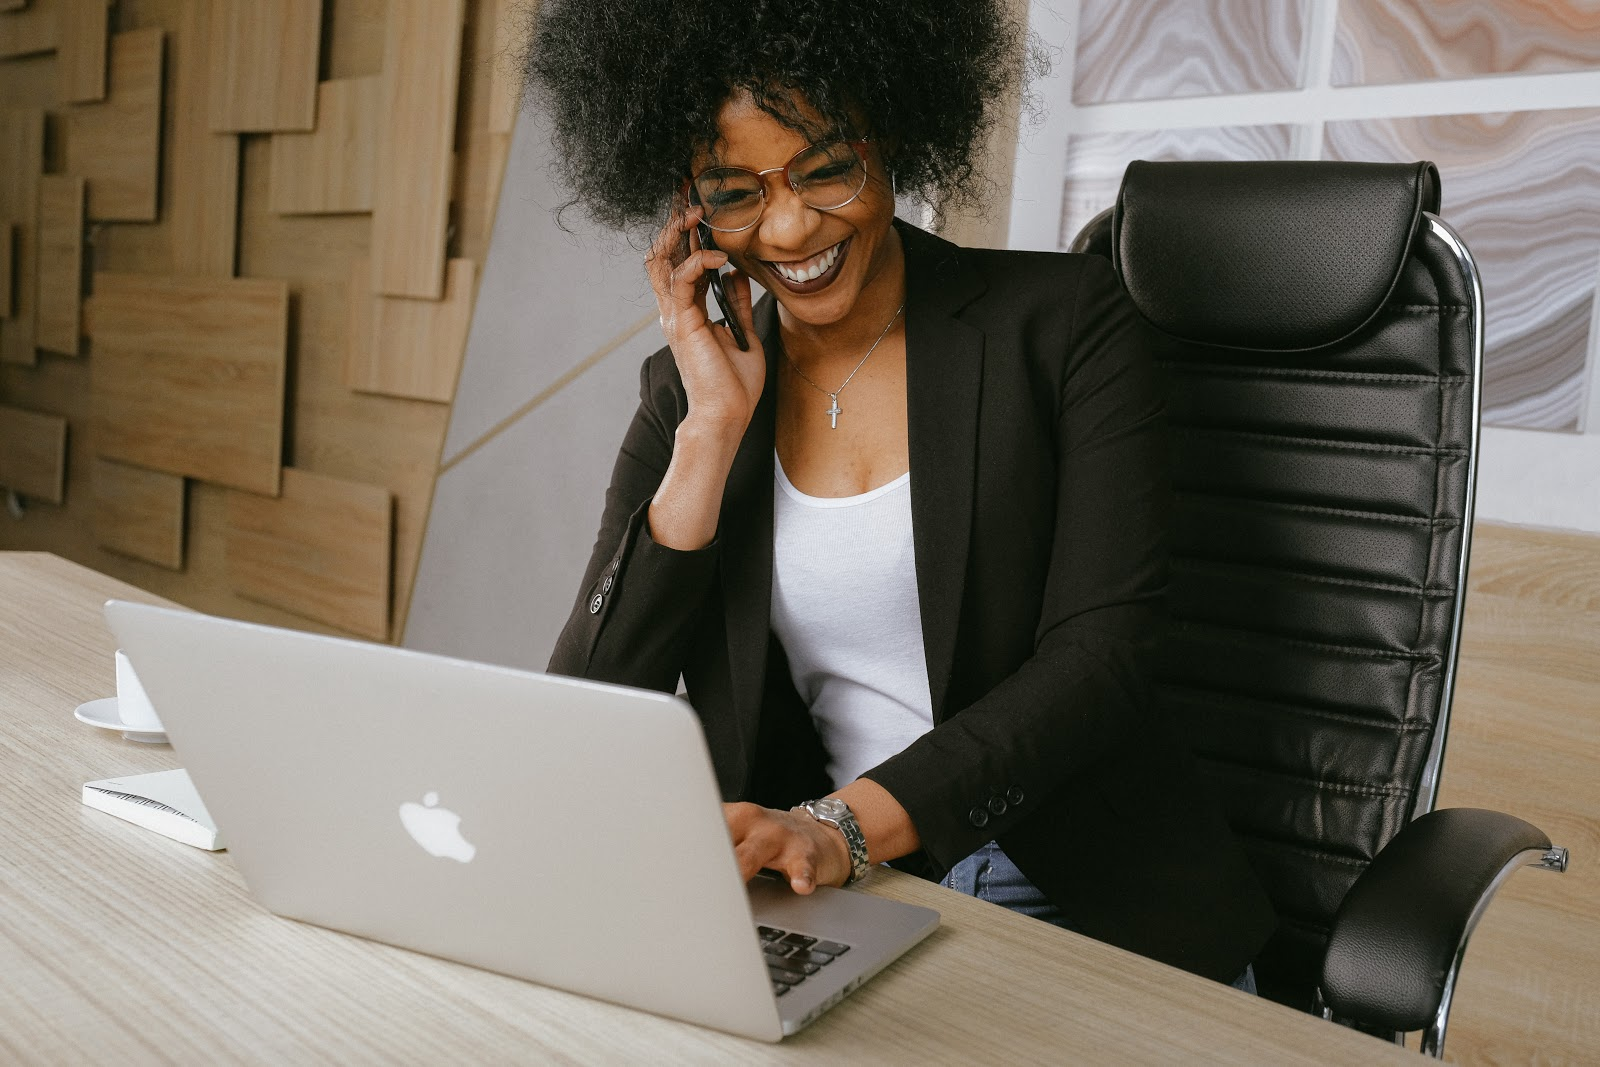 A lady making phone calls in her office